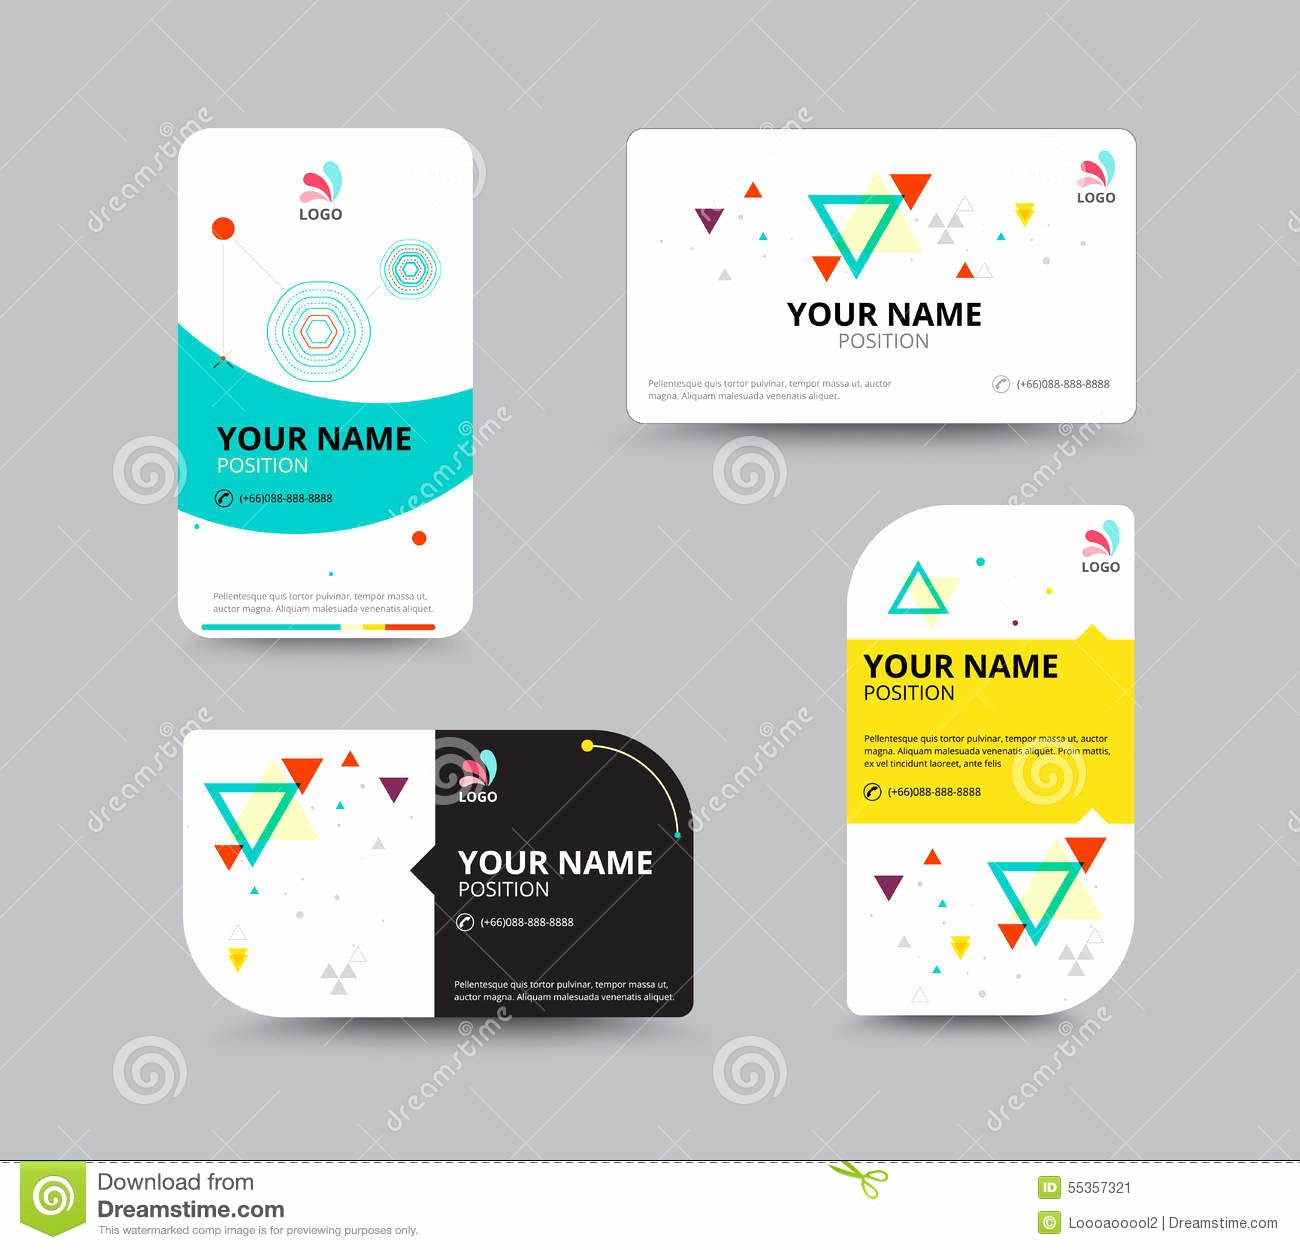 Business Card Layout Template Fresh Business Card Template Business Card Layout Design